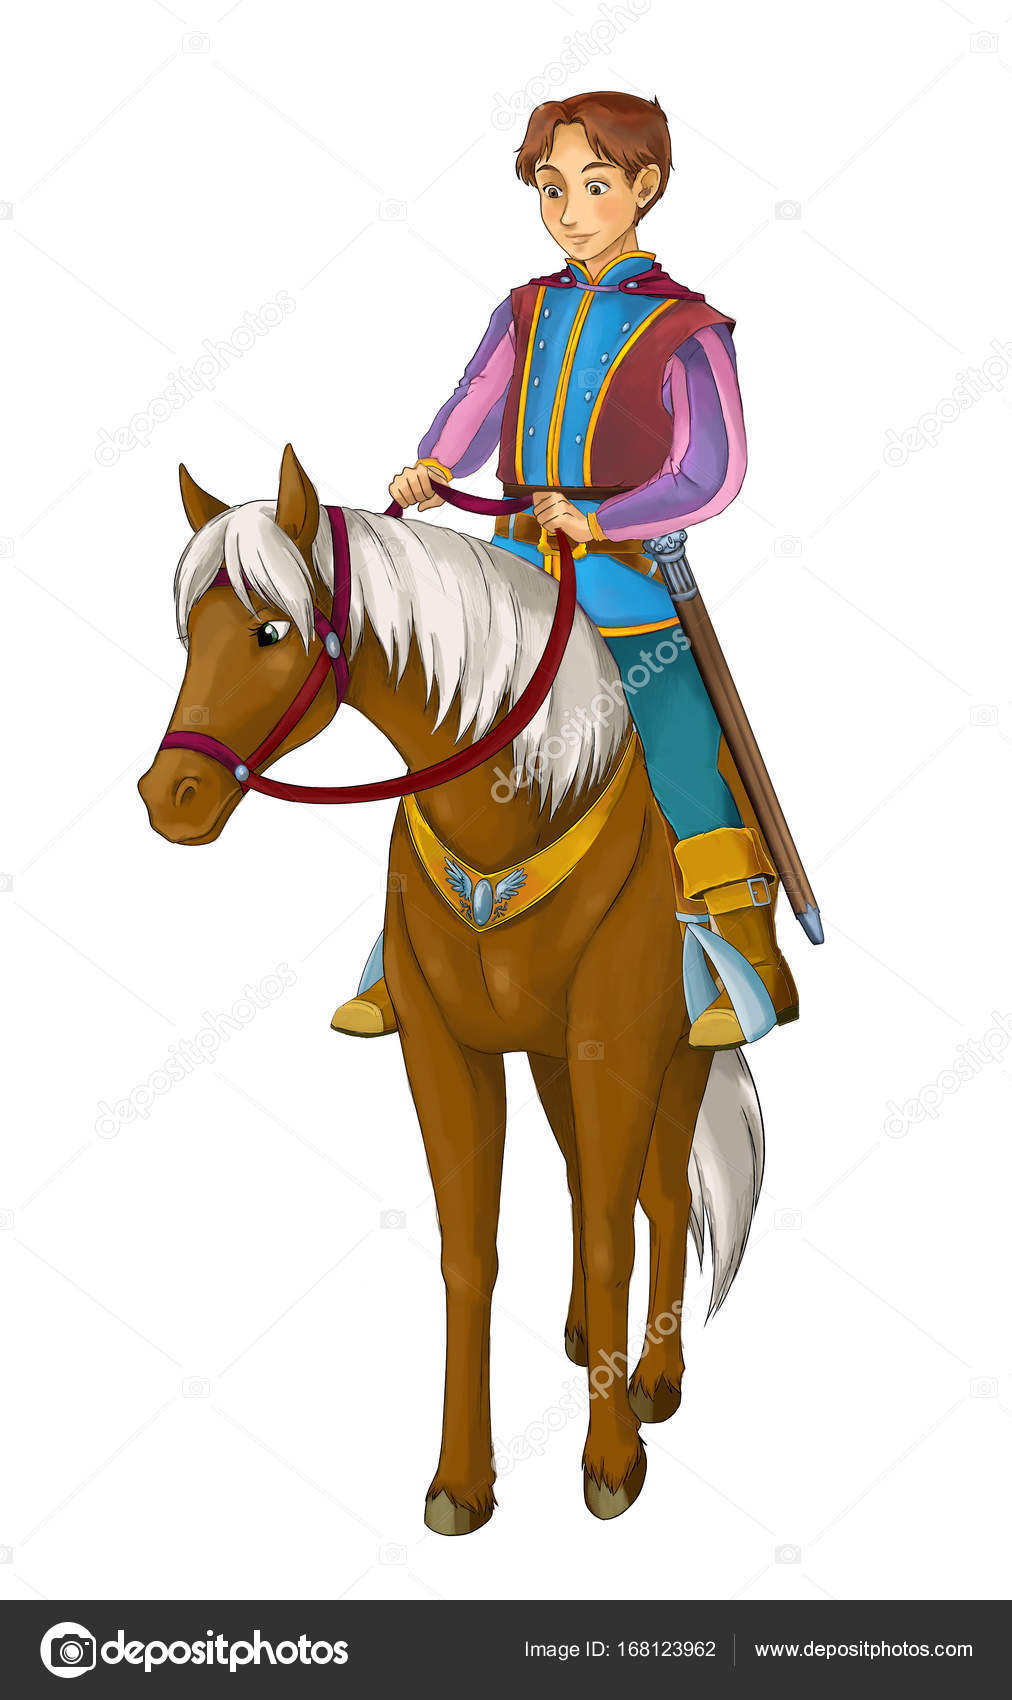 Cartoon Medieval Nobleman Horse Illustration Children Stock Photo C Illustrator Hft 168123962